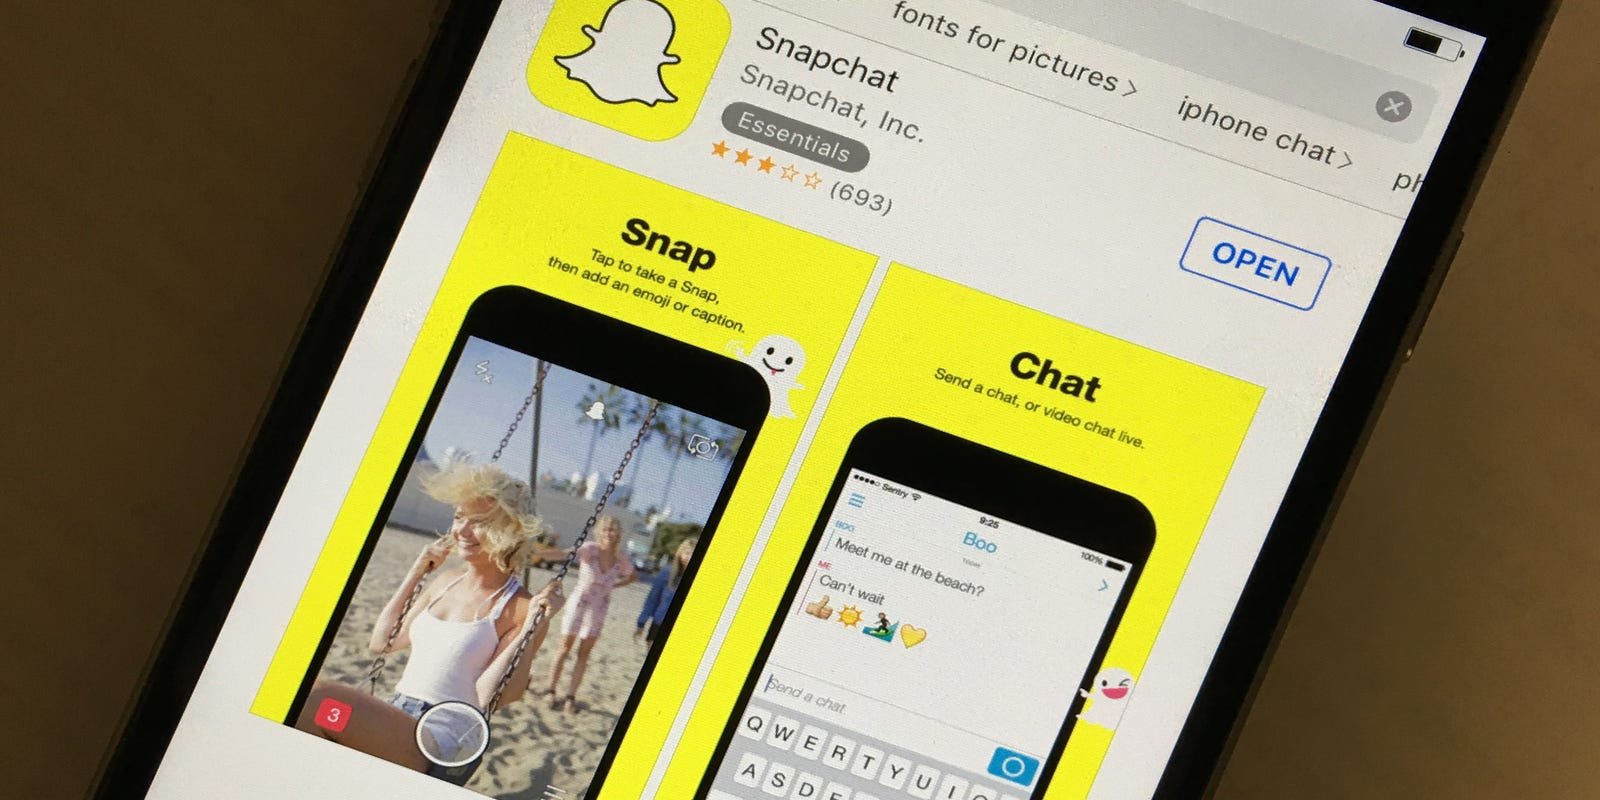 When Snapchat goes bad: Parents, here are 7 things your teen